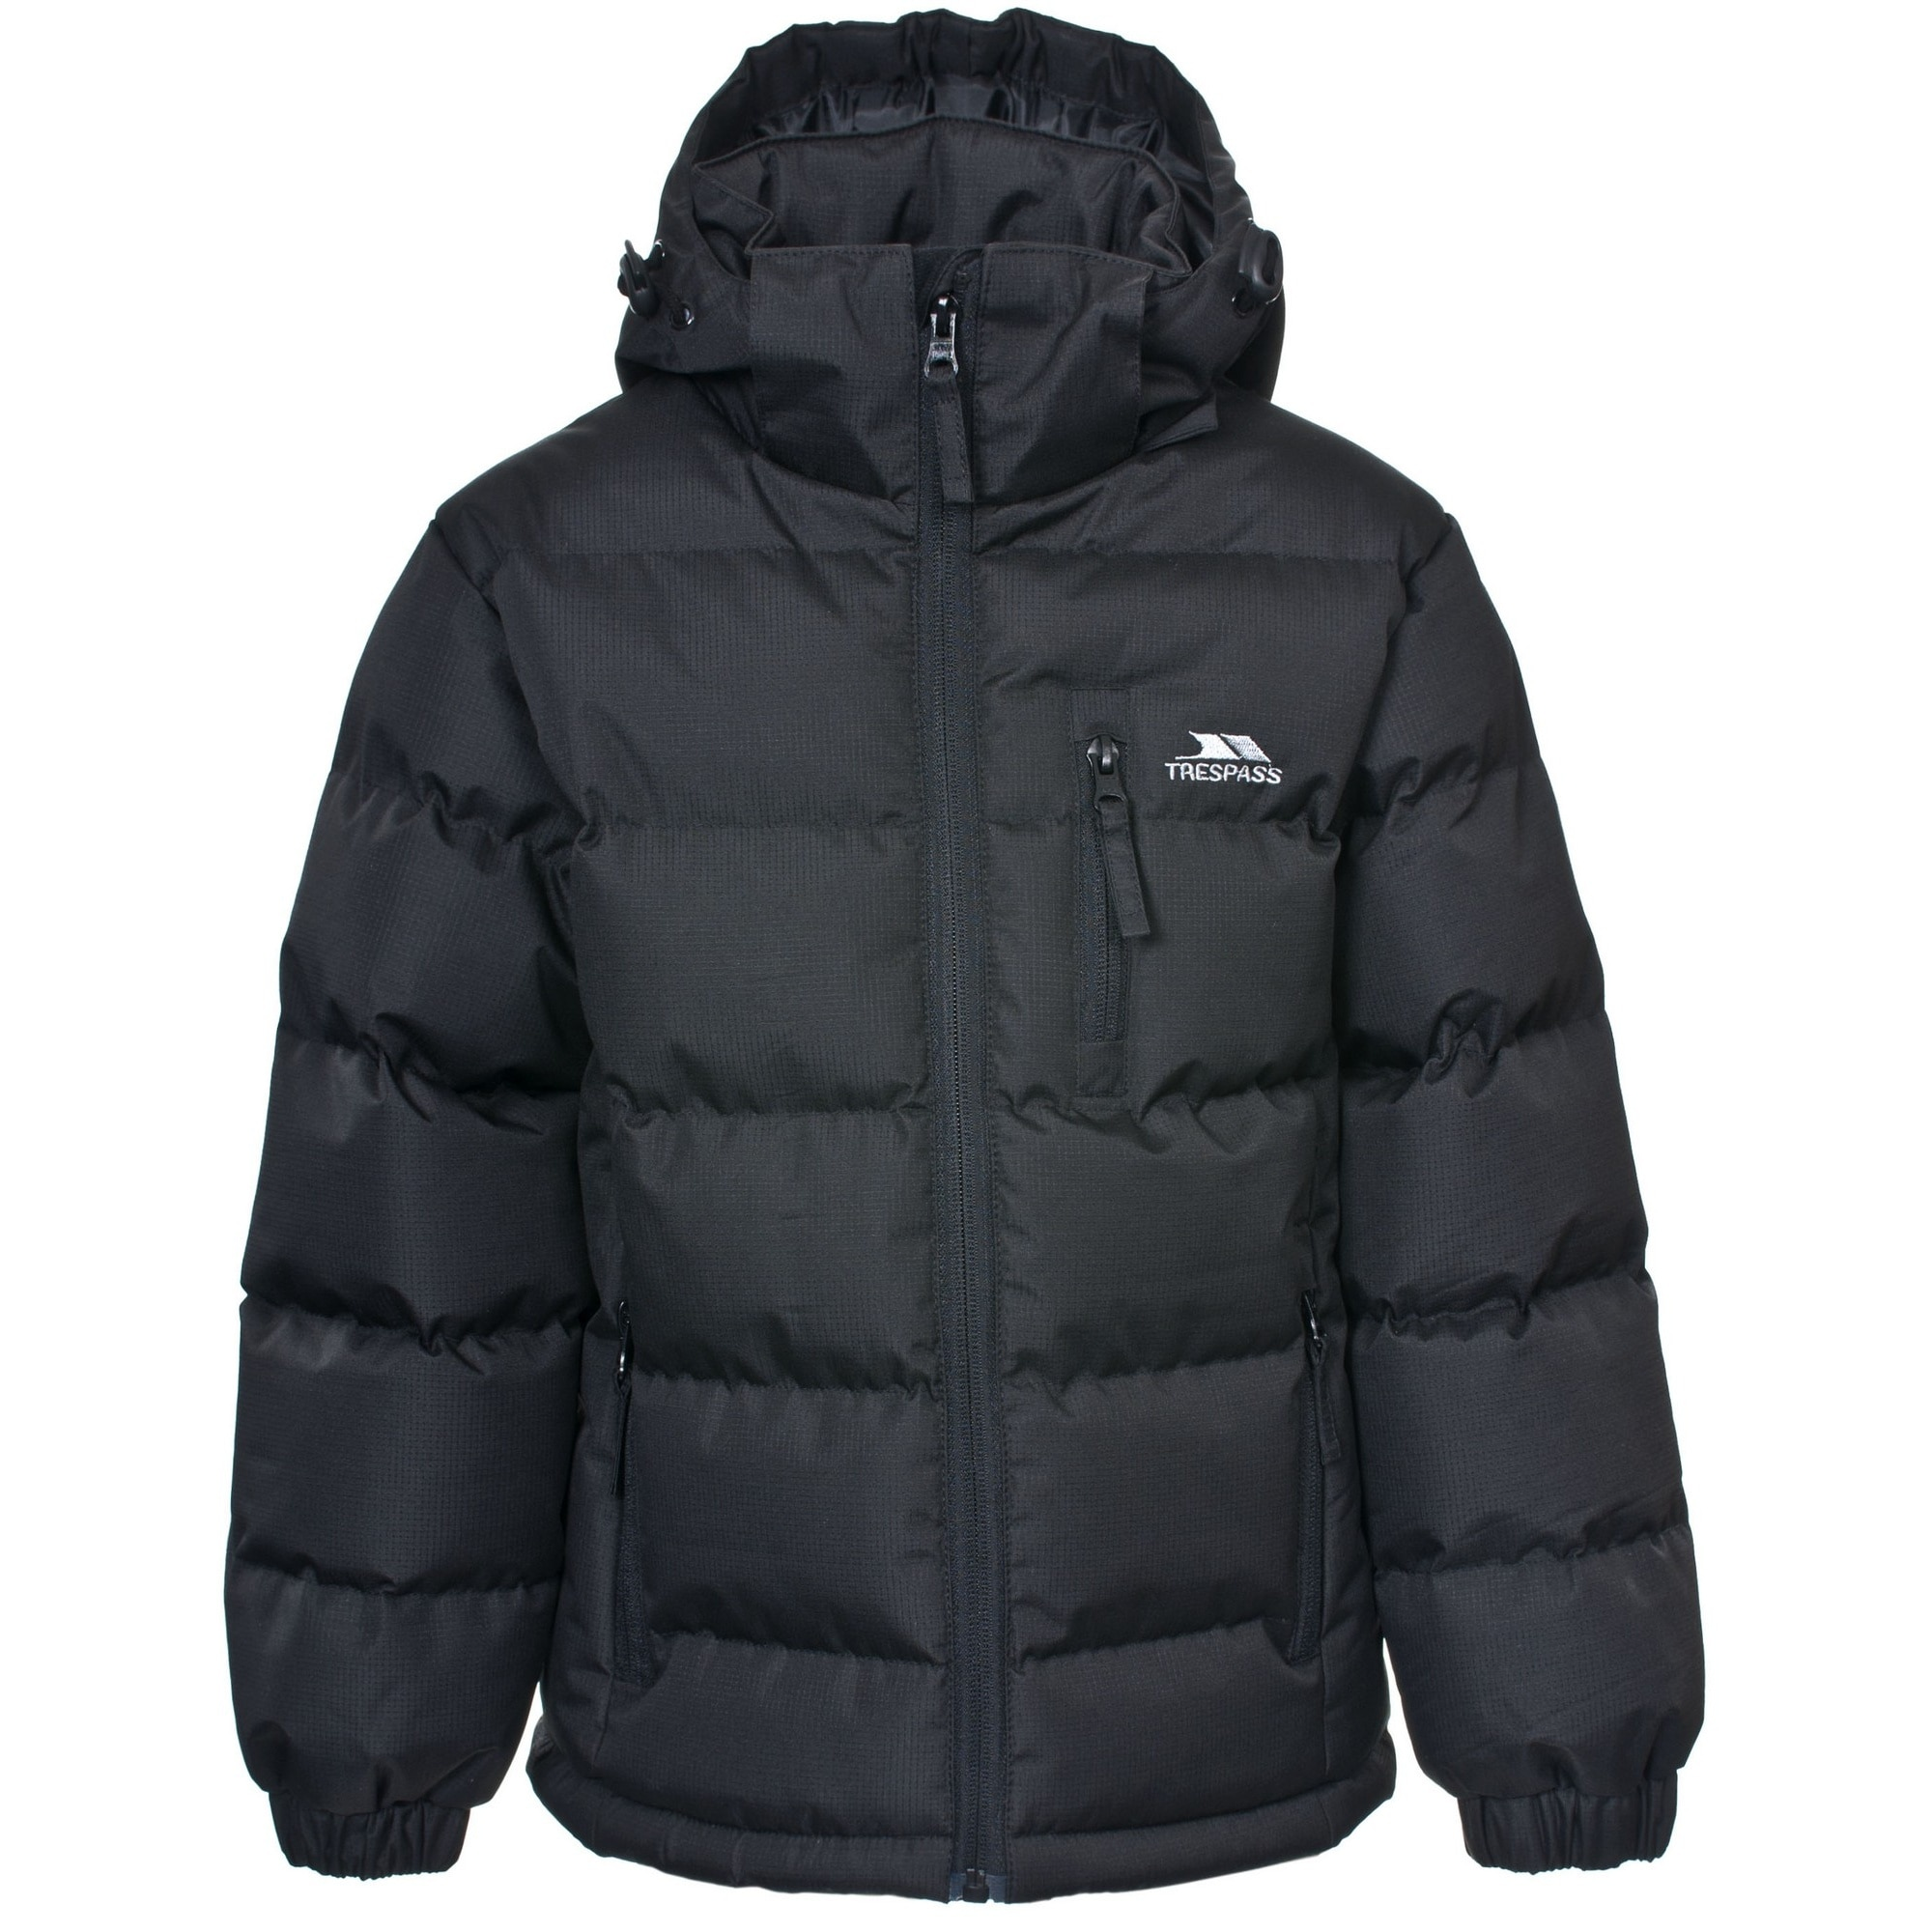 Trespass Steppjacke Kinder Jungen Tuff Winterjacke / | 05050985761392